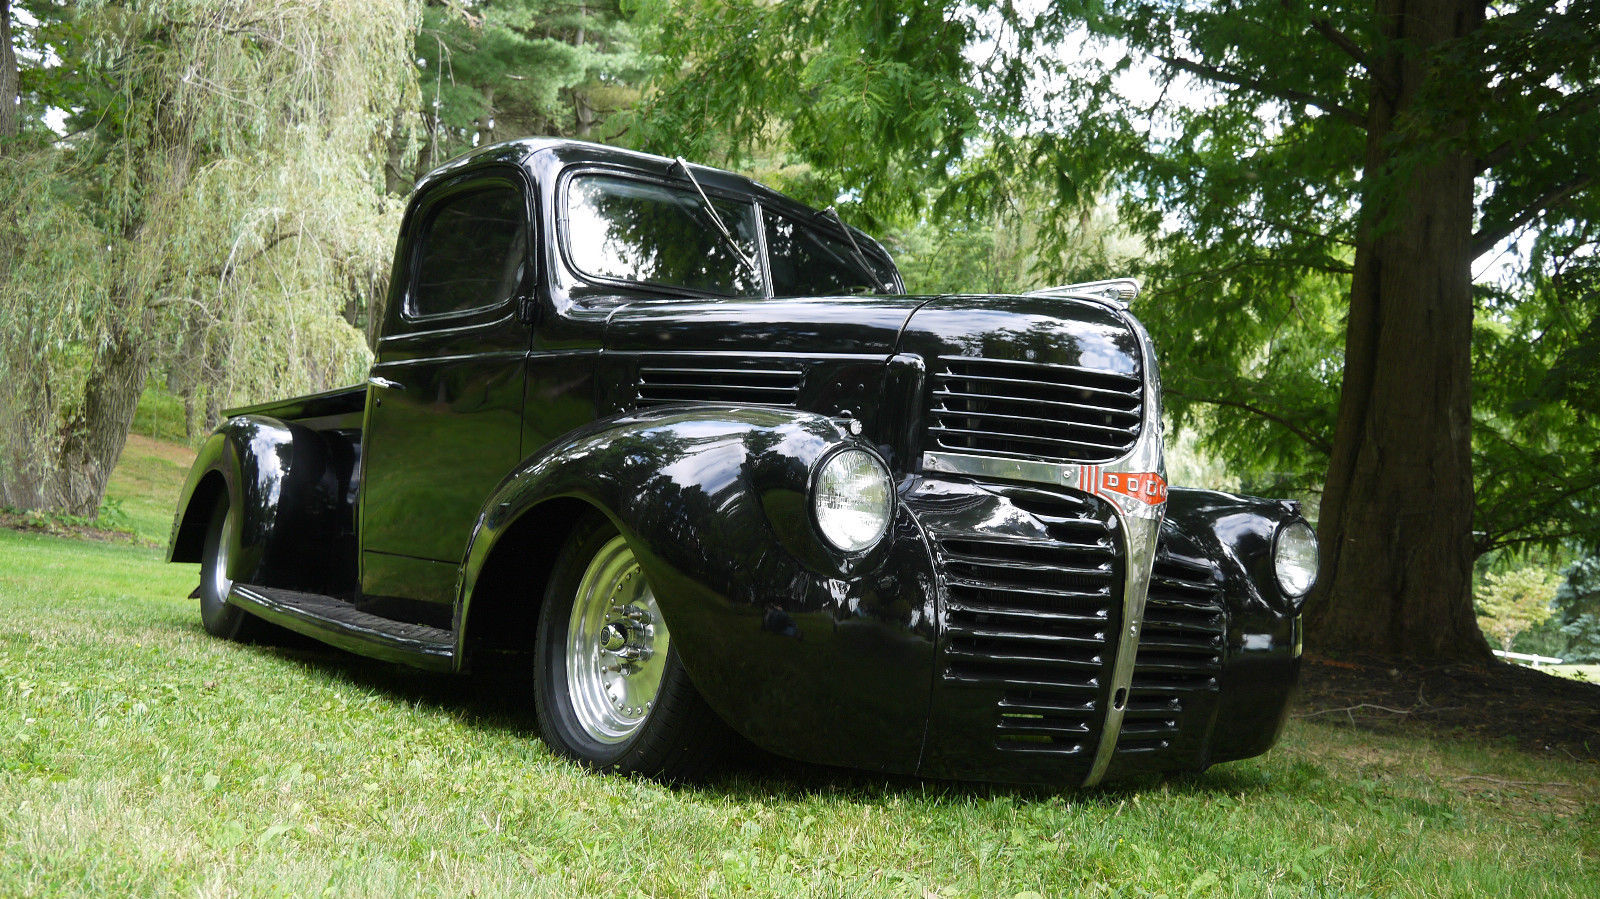 1946 dodge pickup chrysler chevy ford gmc other packard plymouth buick olds classic dodge. Black Bedroom Furniture Sets. Home Design Ideas